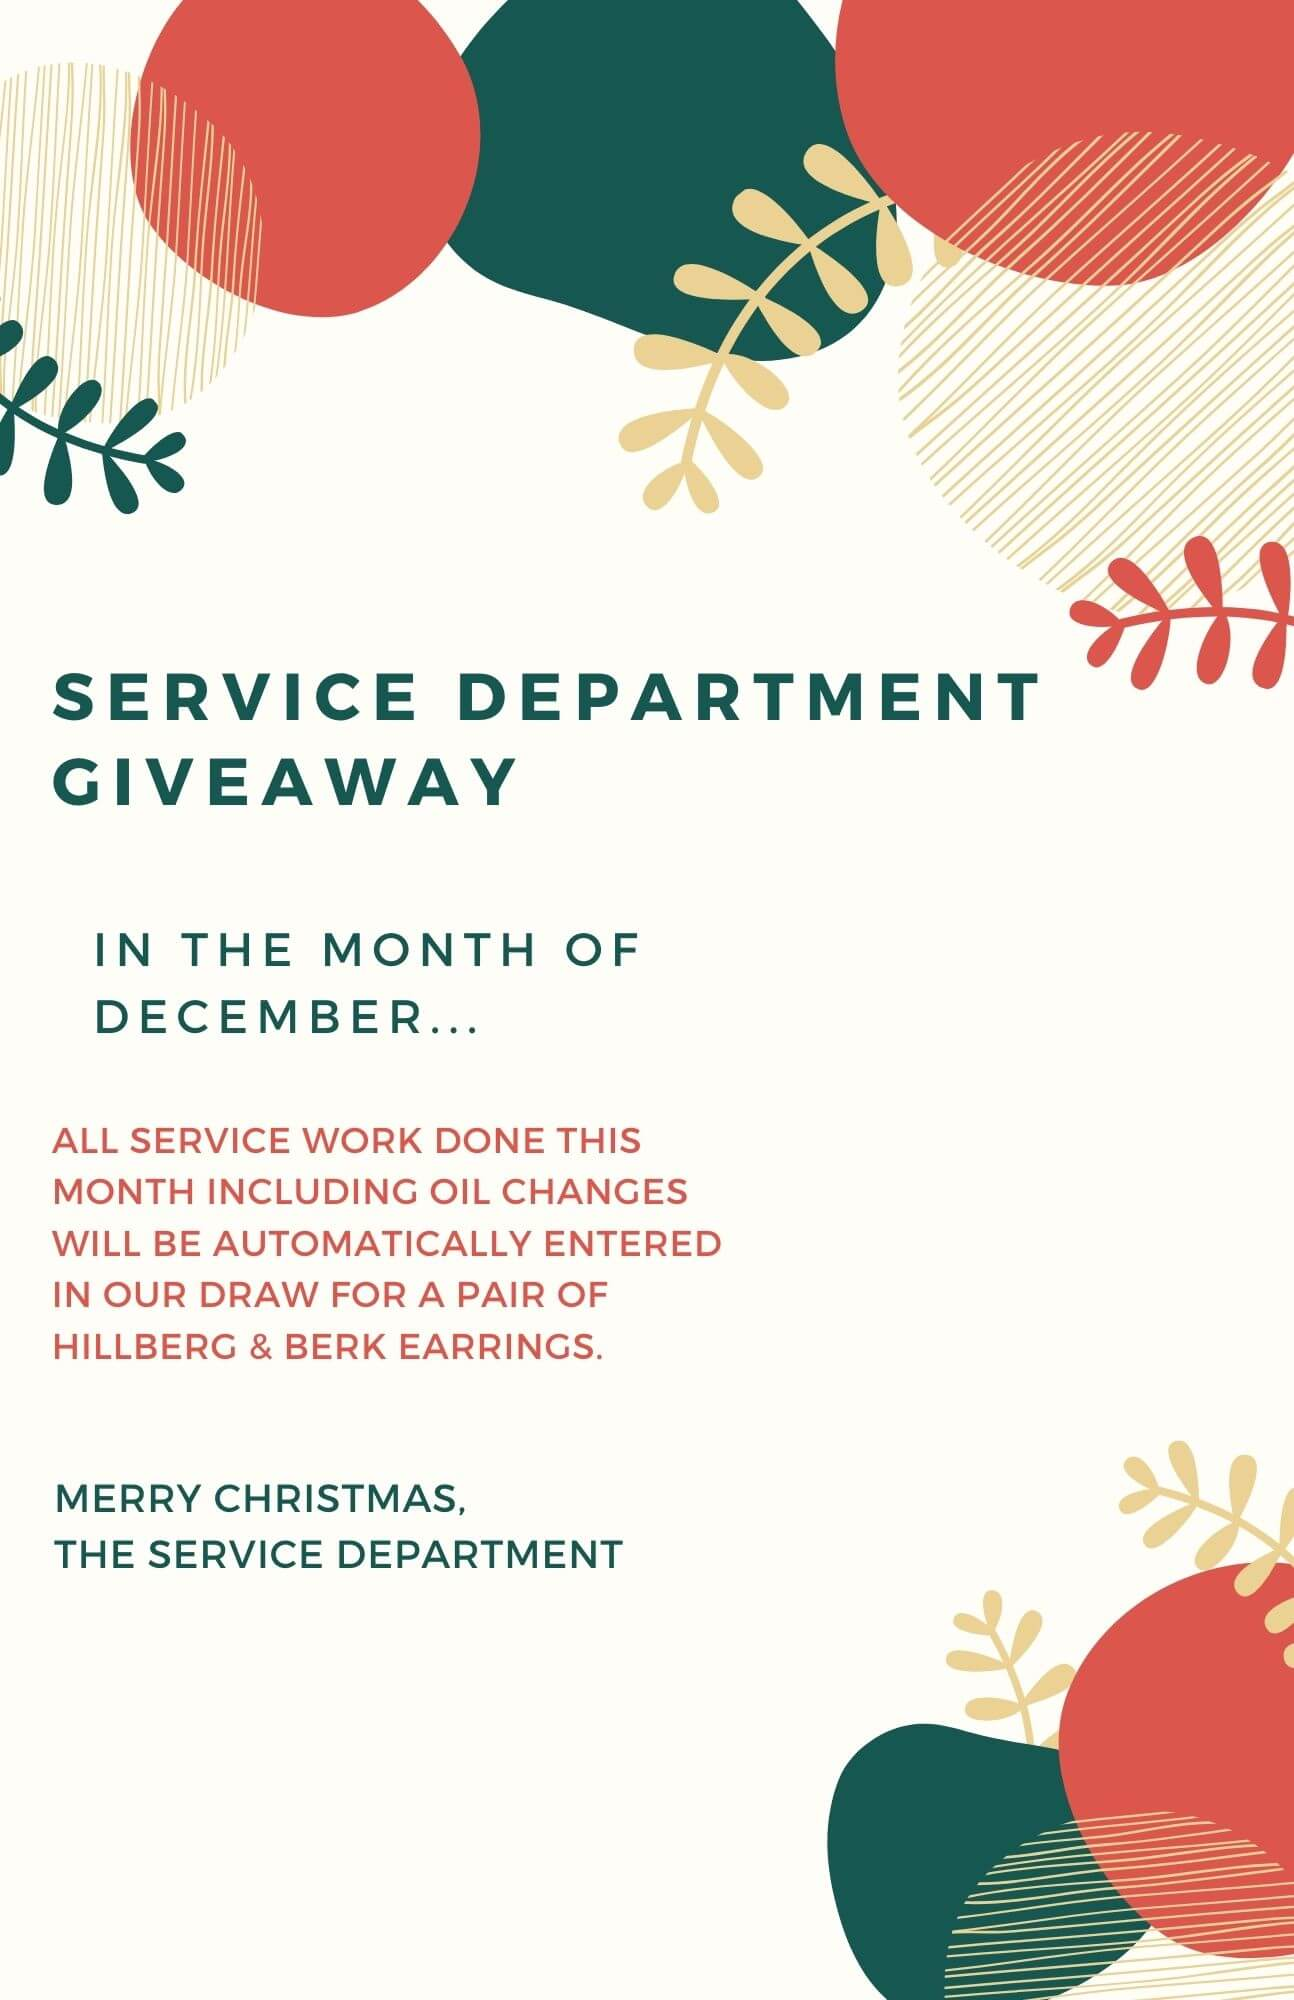 Service Department Giveaway